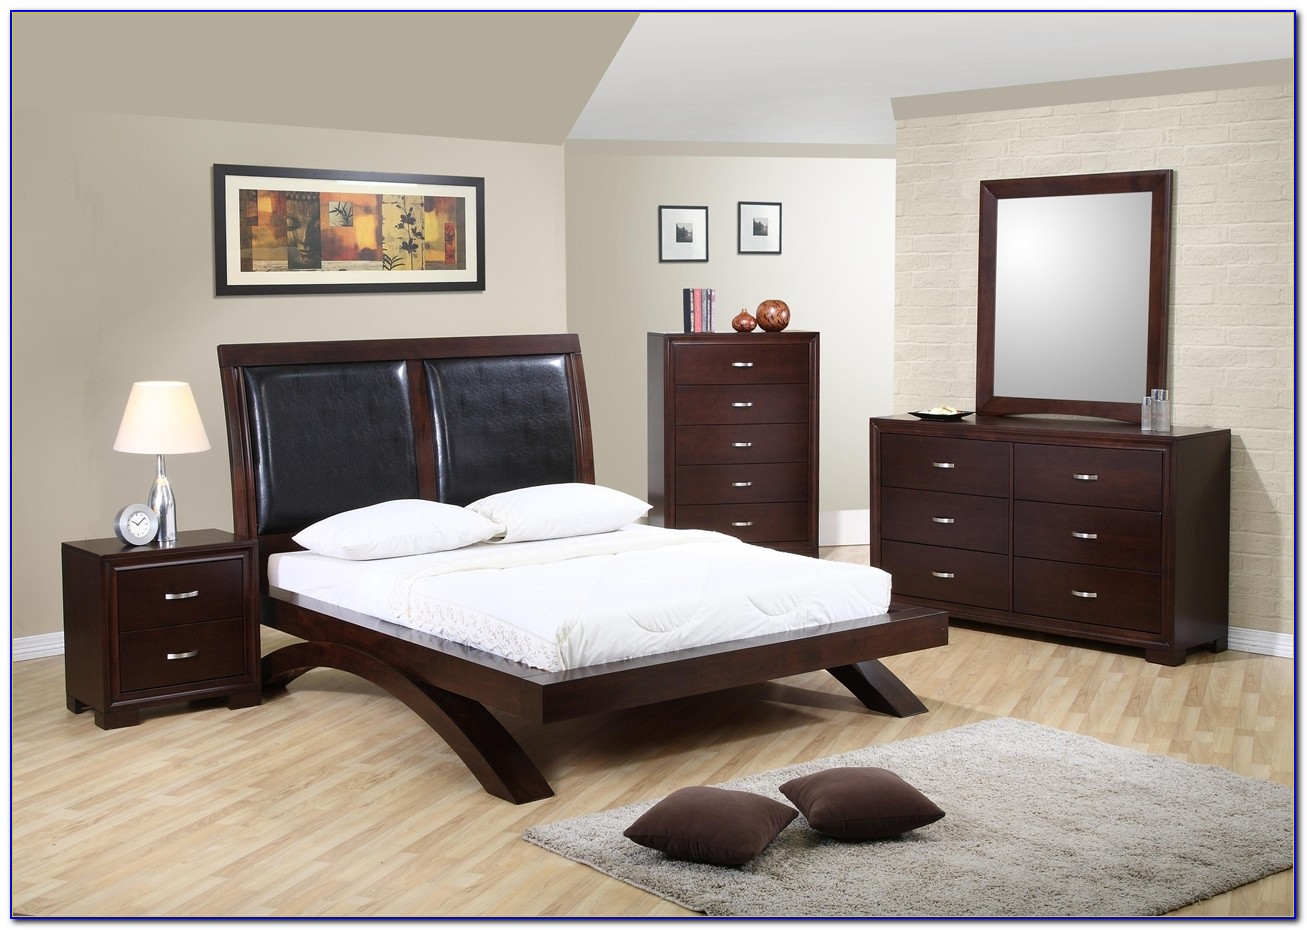 Bedroom Furniture Orange County California